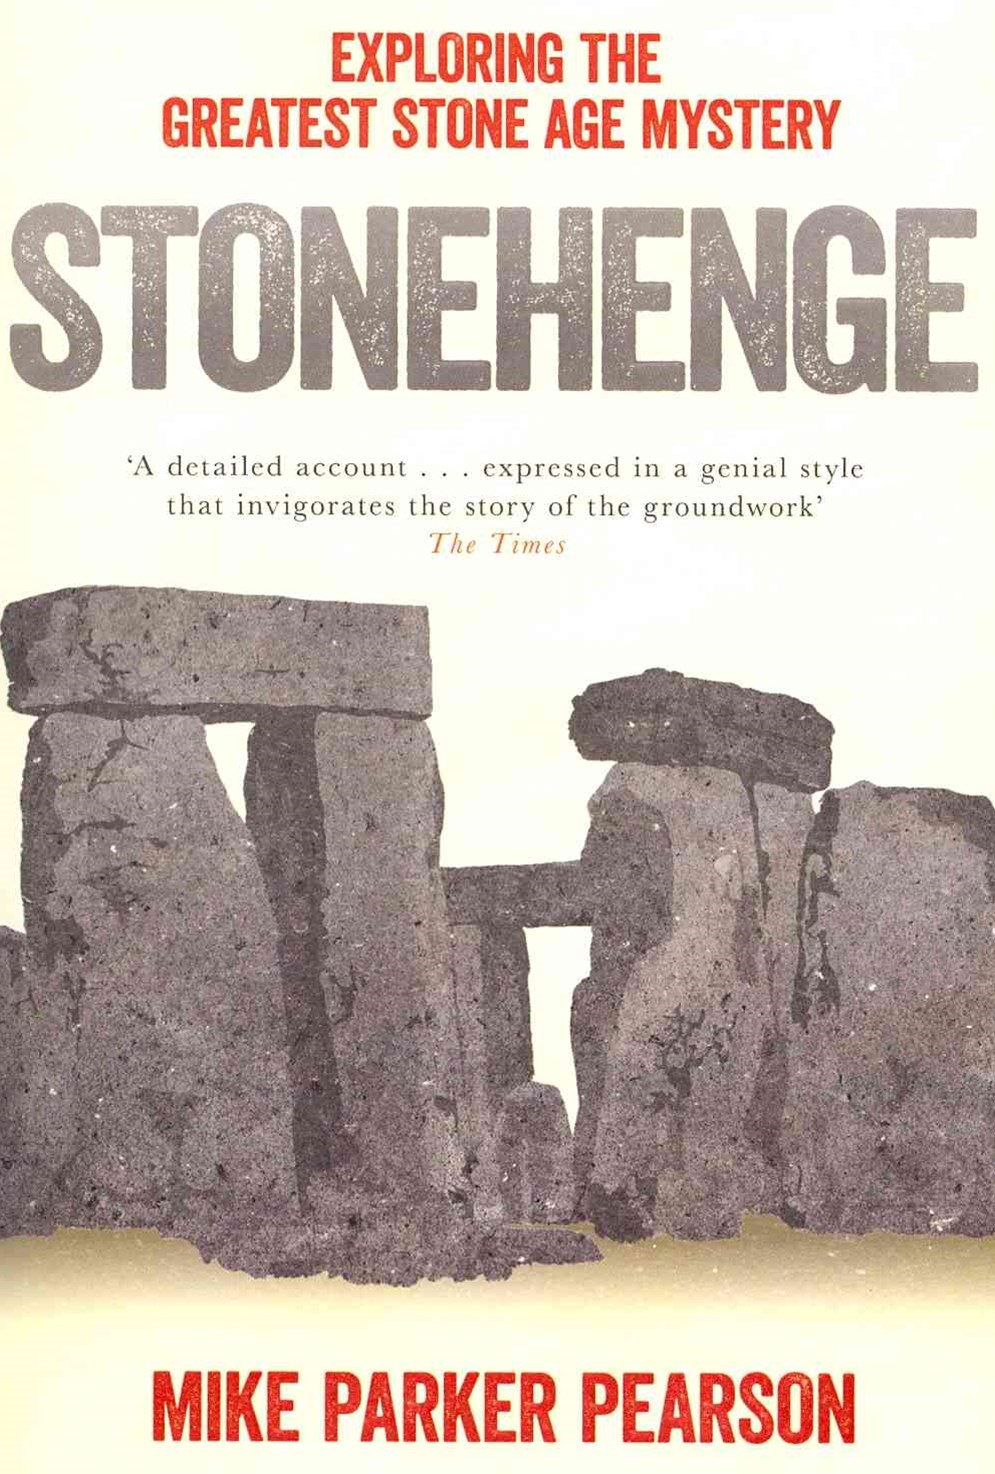 Stonehenge Explained